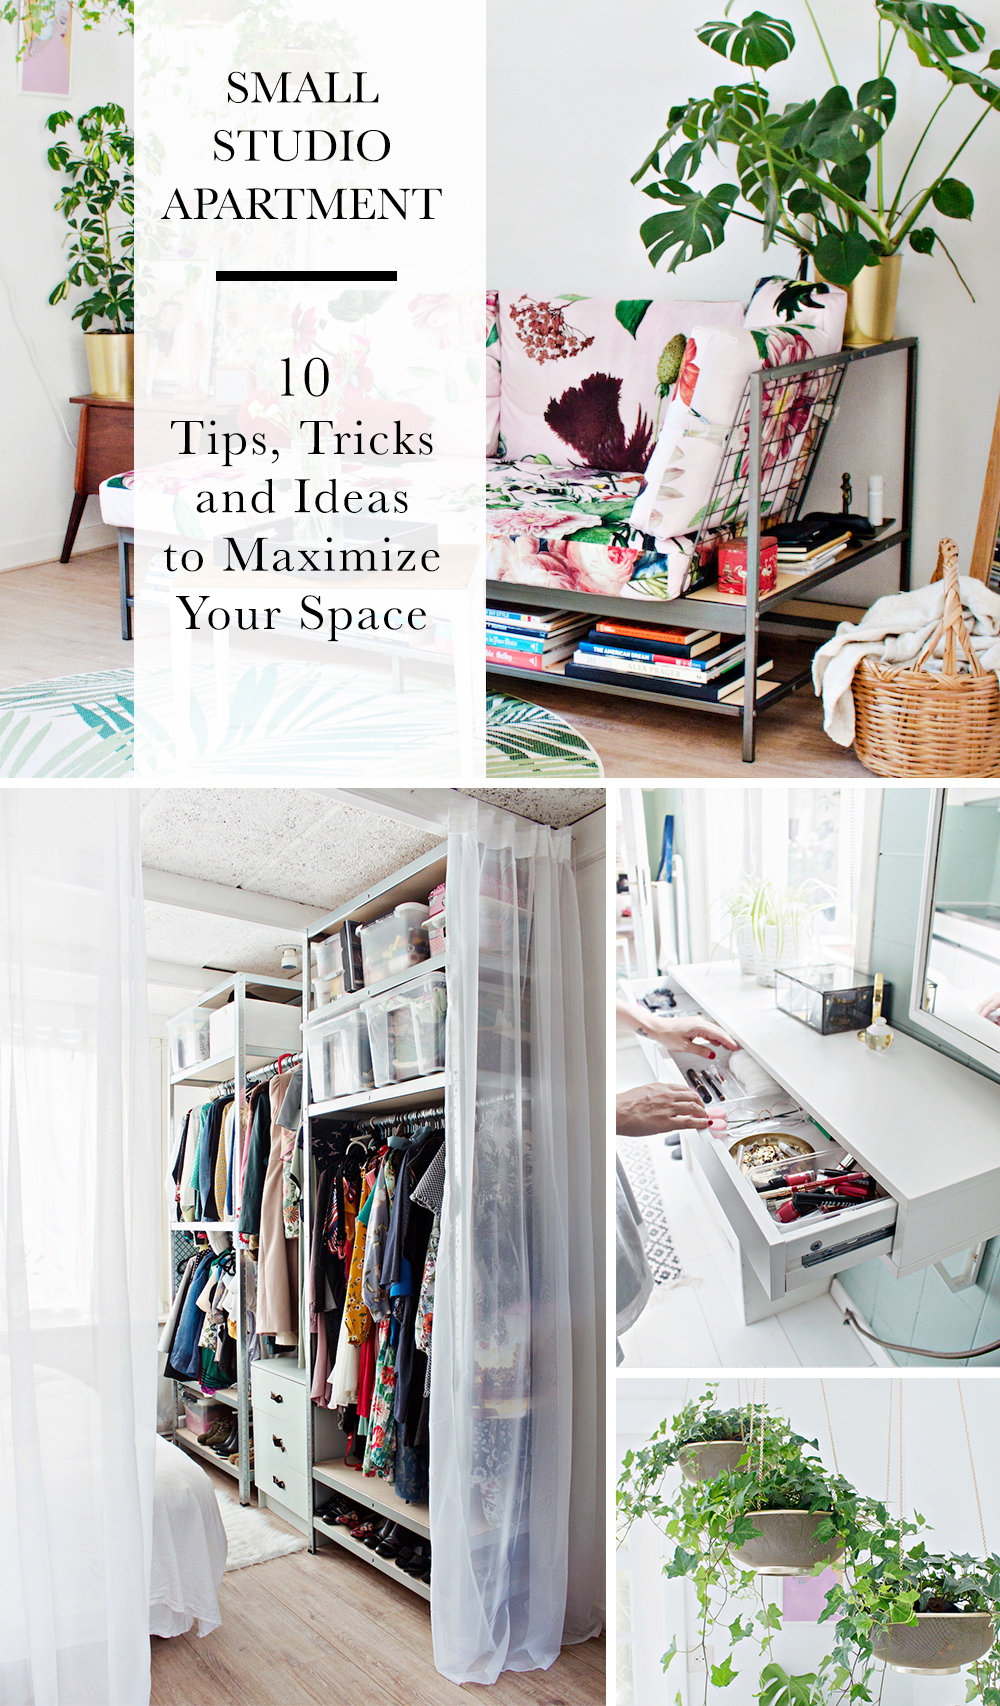 small studio apartment 10 tips tricks and ideas to maximize your